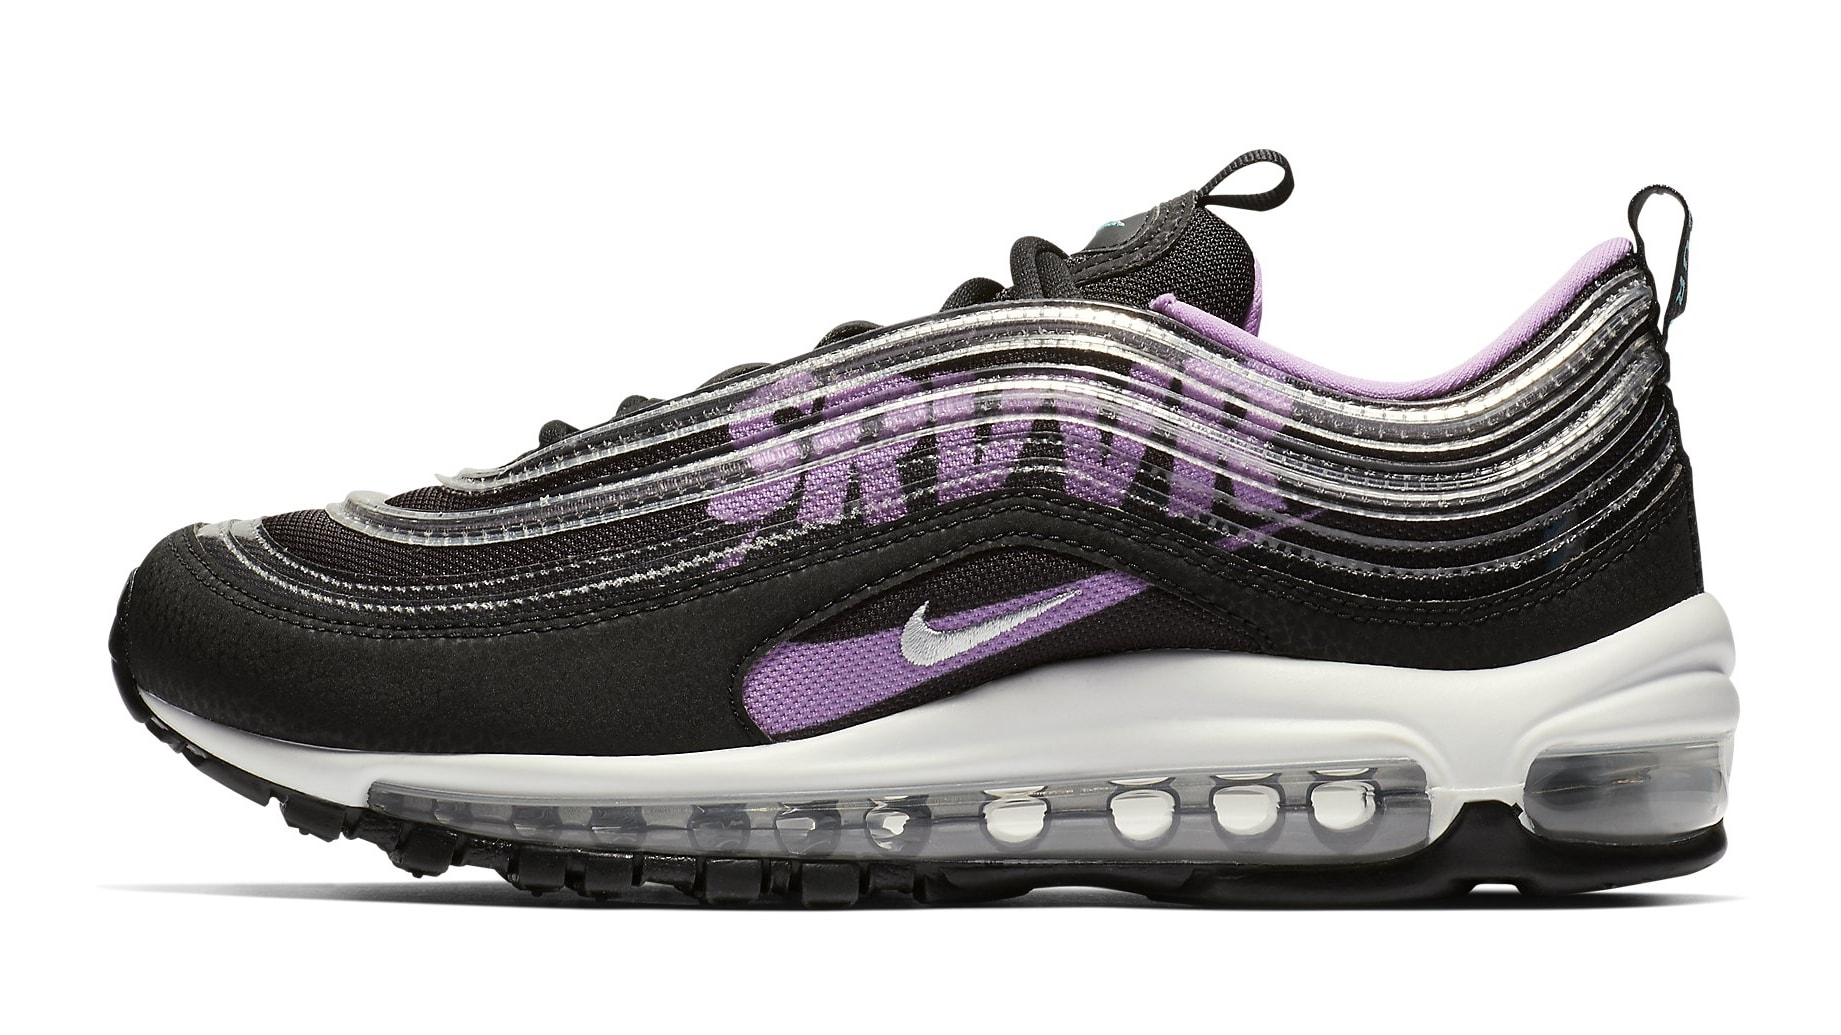 nike-doernbecher-2018-air-max-97-womens-bv7114-001-lateral